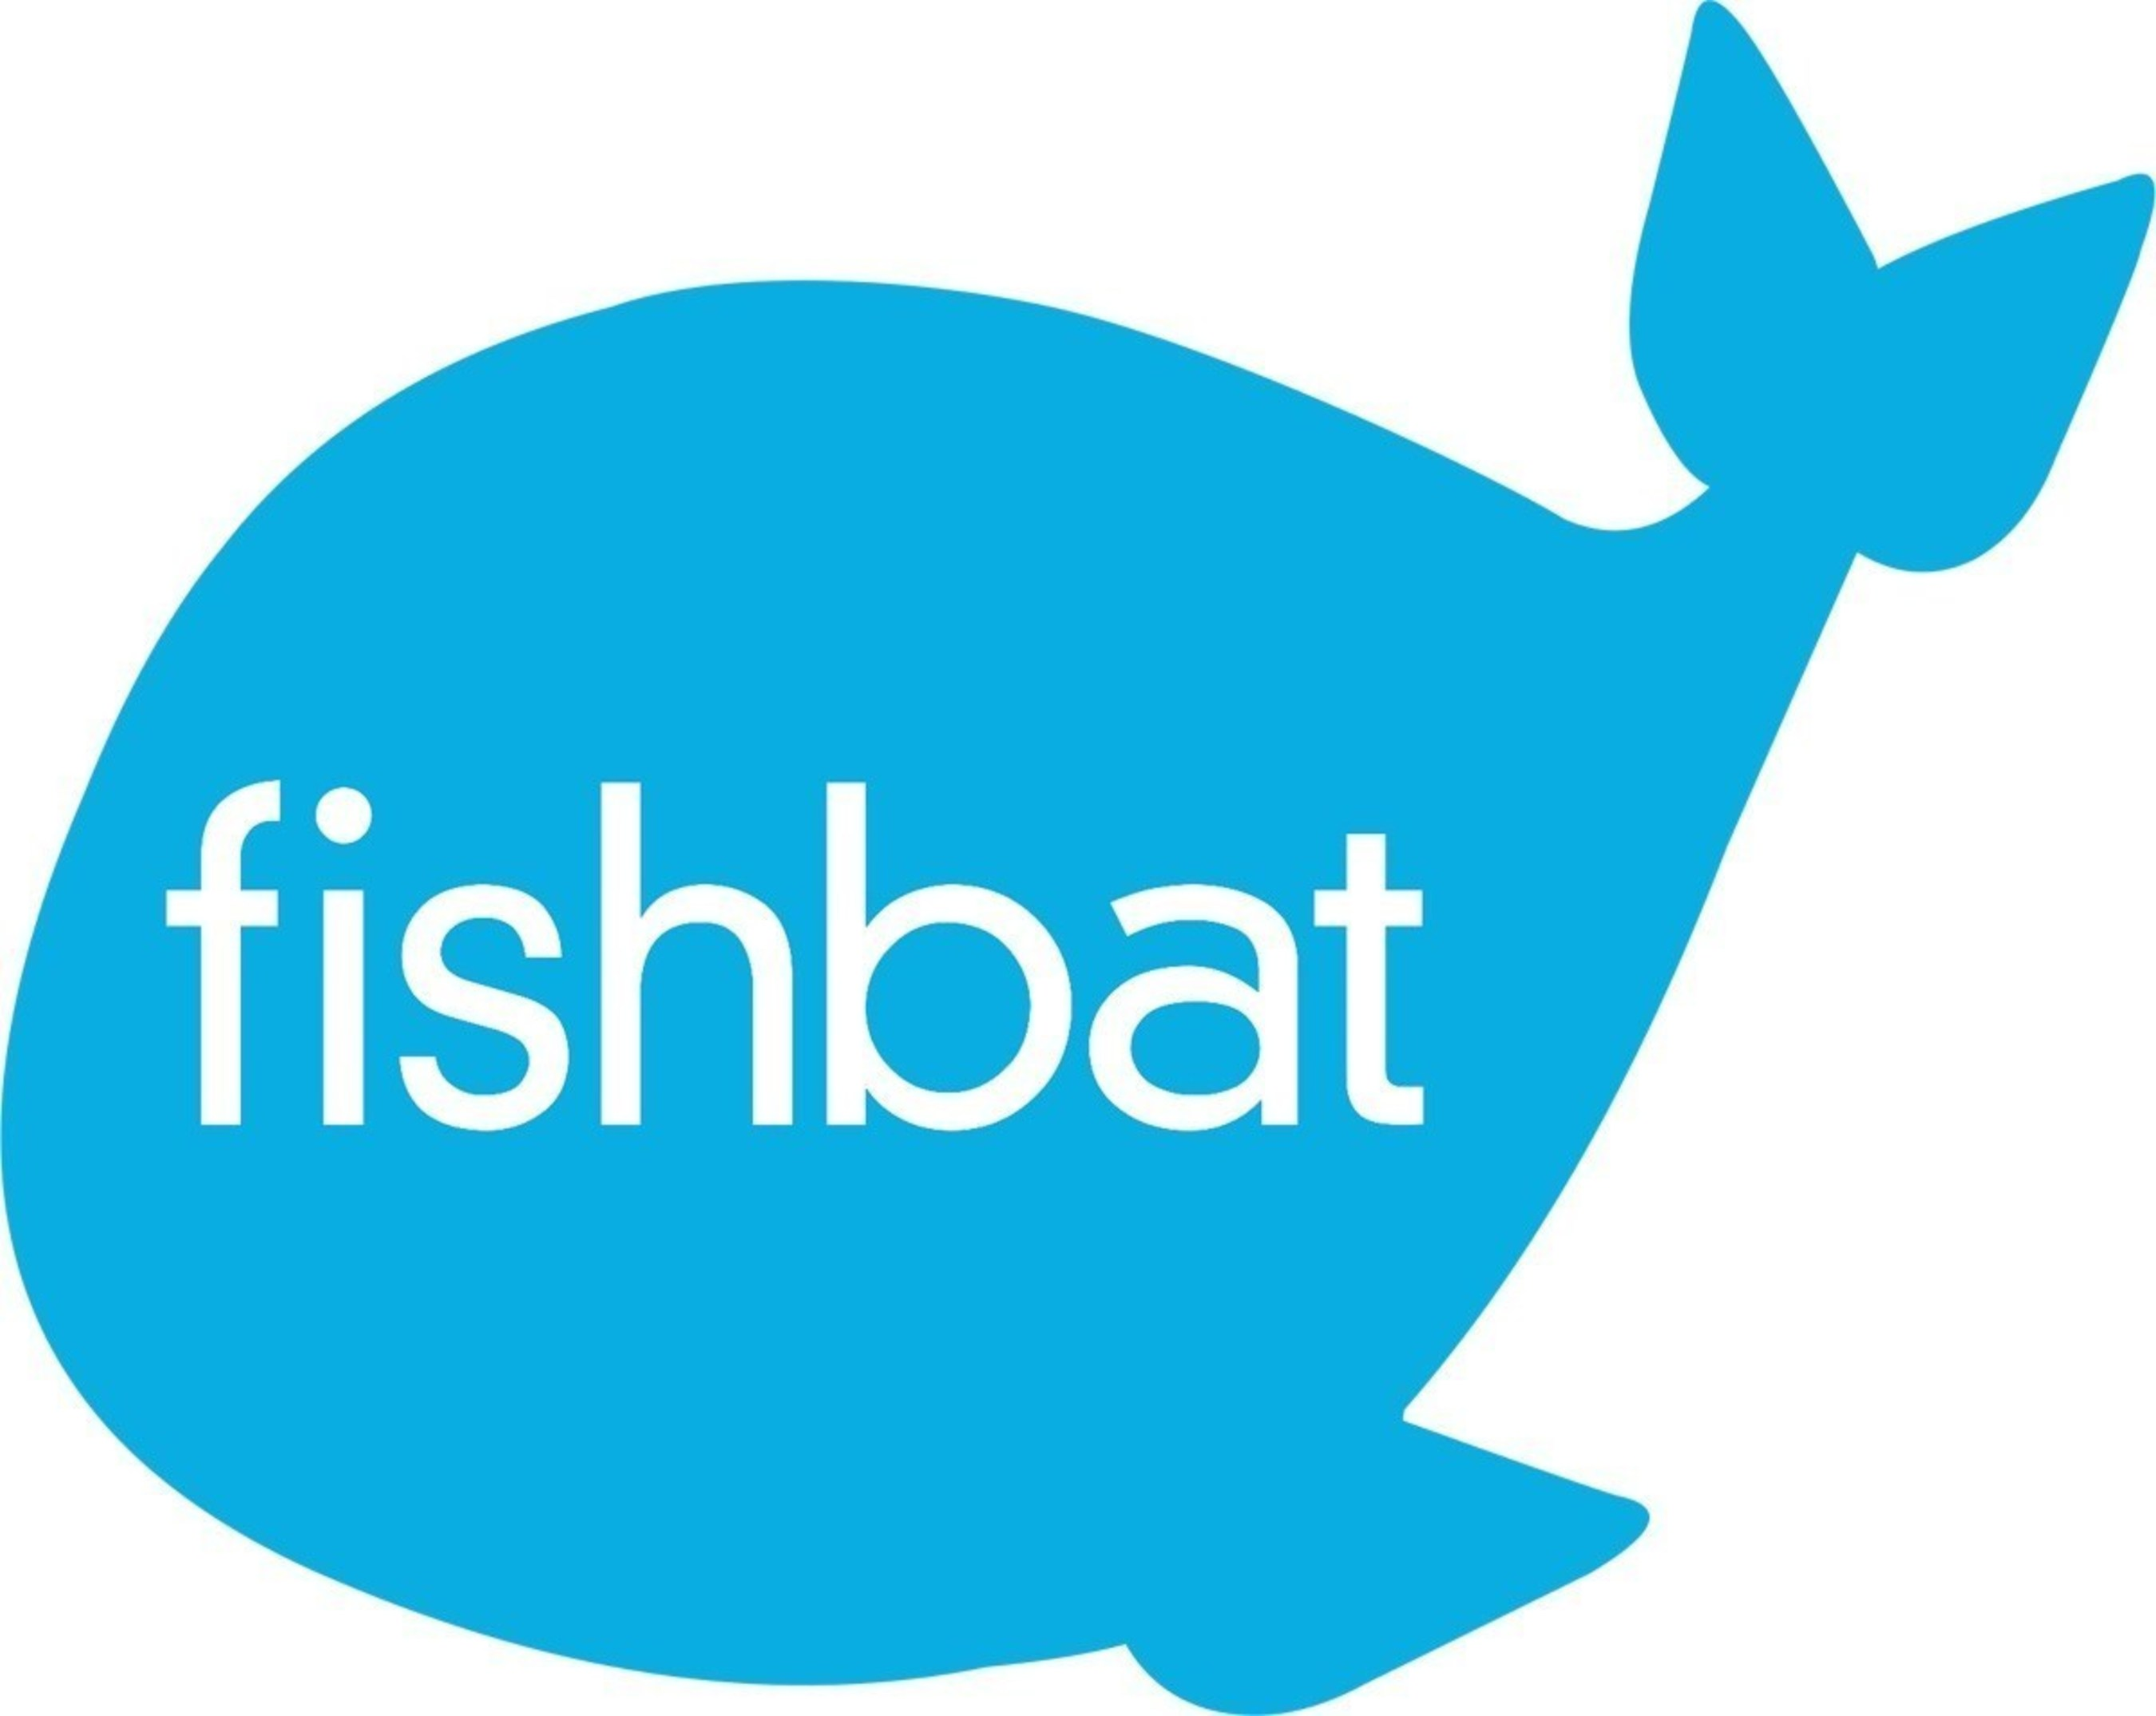 fishbat CMO Jennifer Calise Shares 4 Ways to Improve Your Email Subject Line